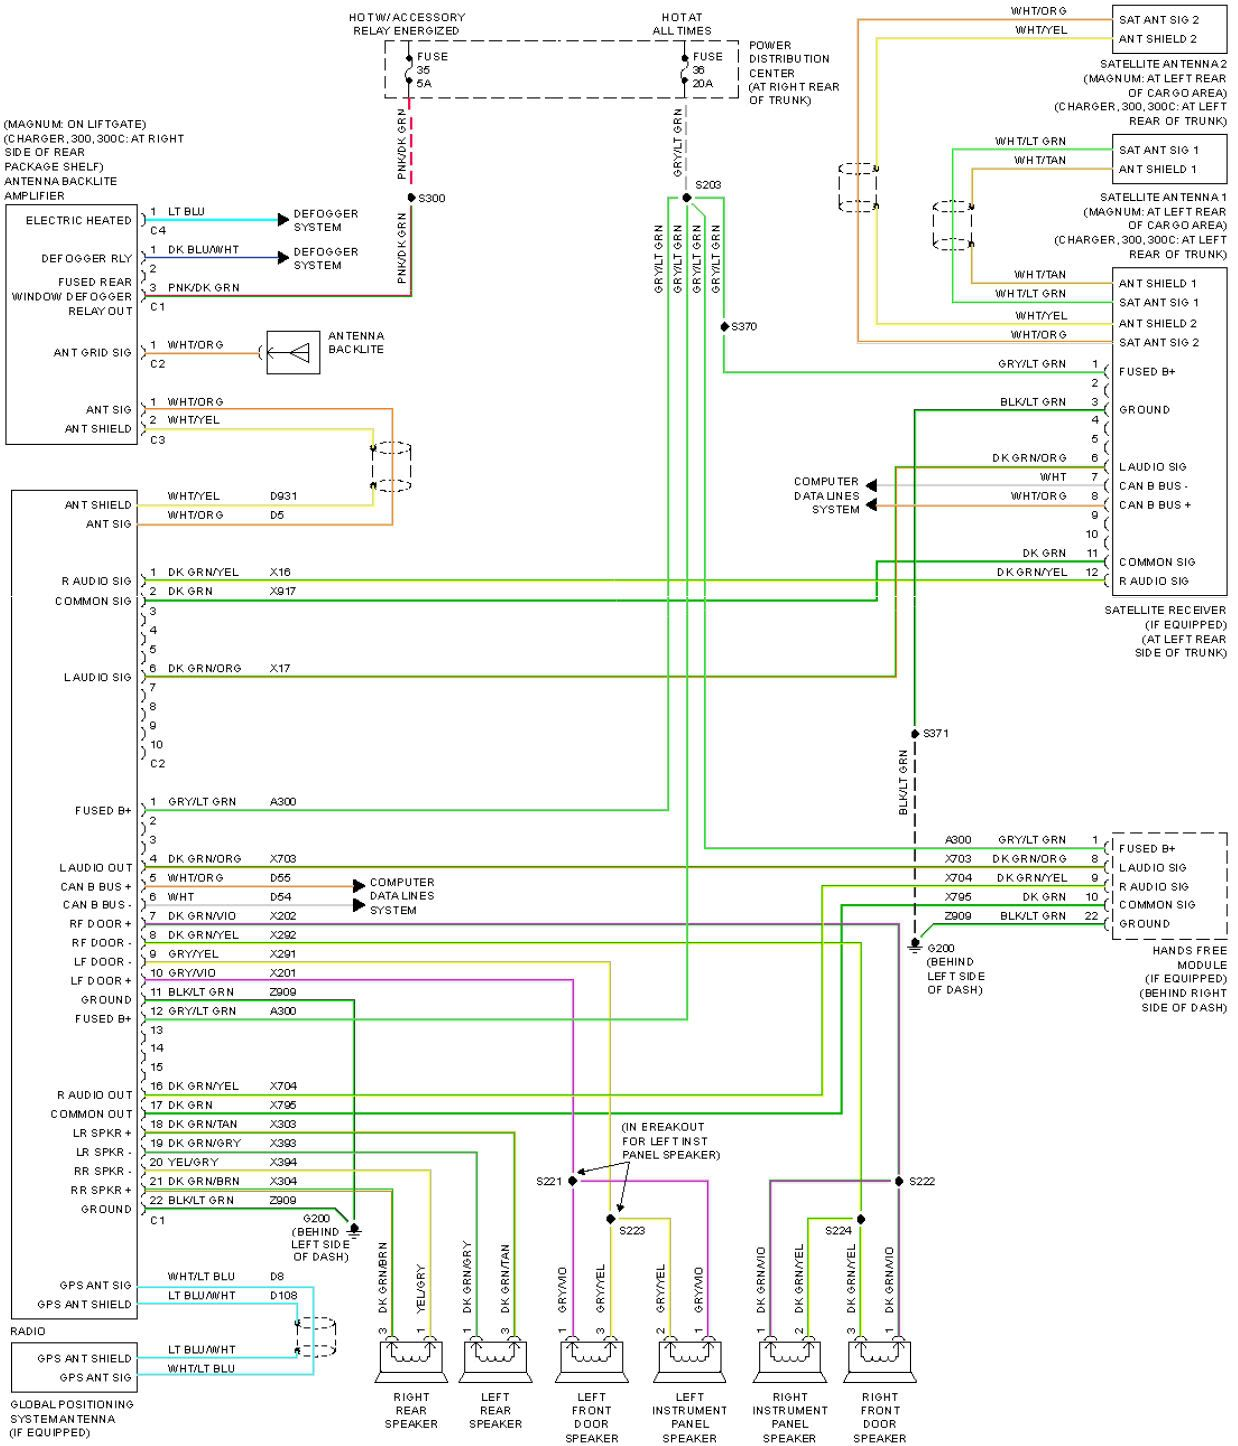 2005 Chrysler 300 Wiring Diagram  2  With Images